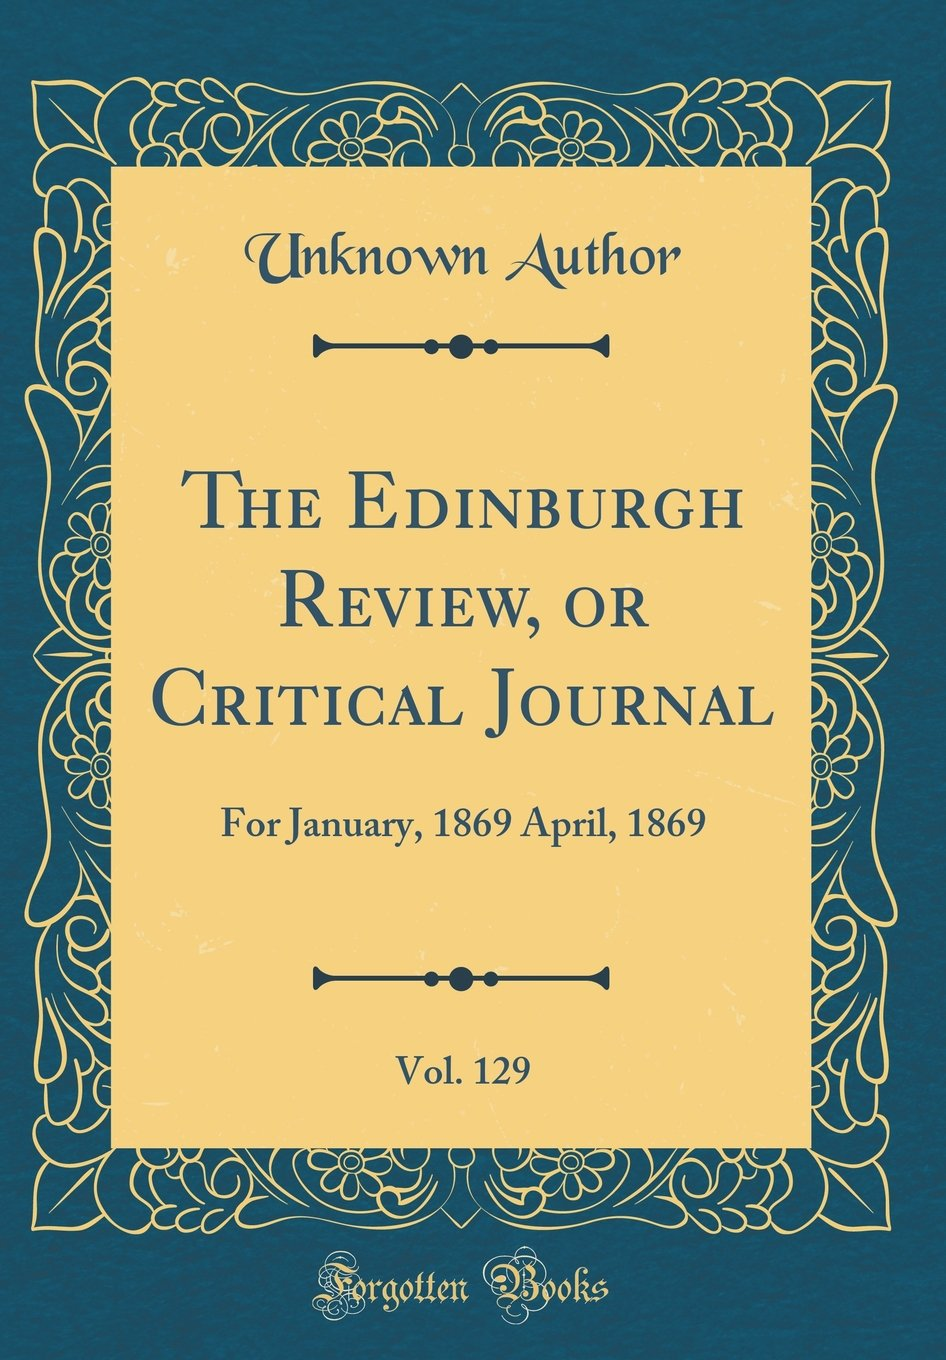 Download The Edinburgh Review, or Critical Journal, Vol. 129: For January, 1869 April, 1869 (Classic Reprint) PDF